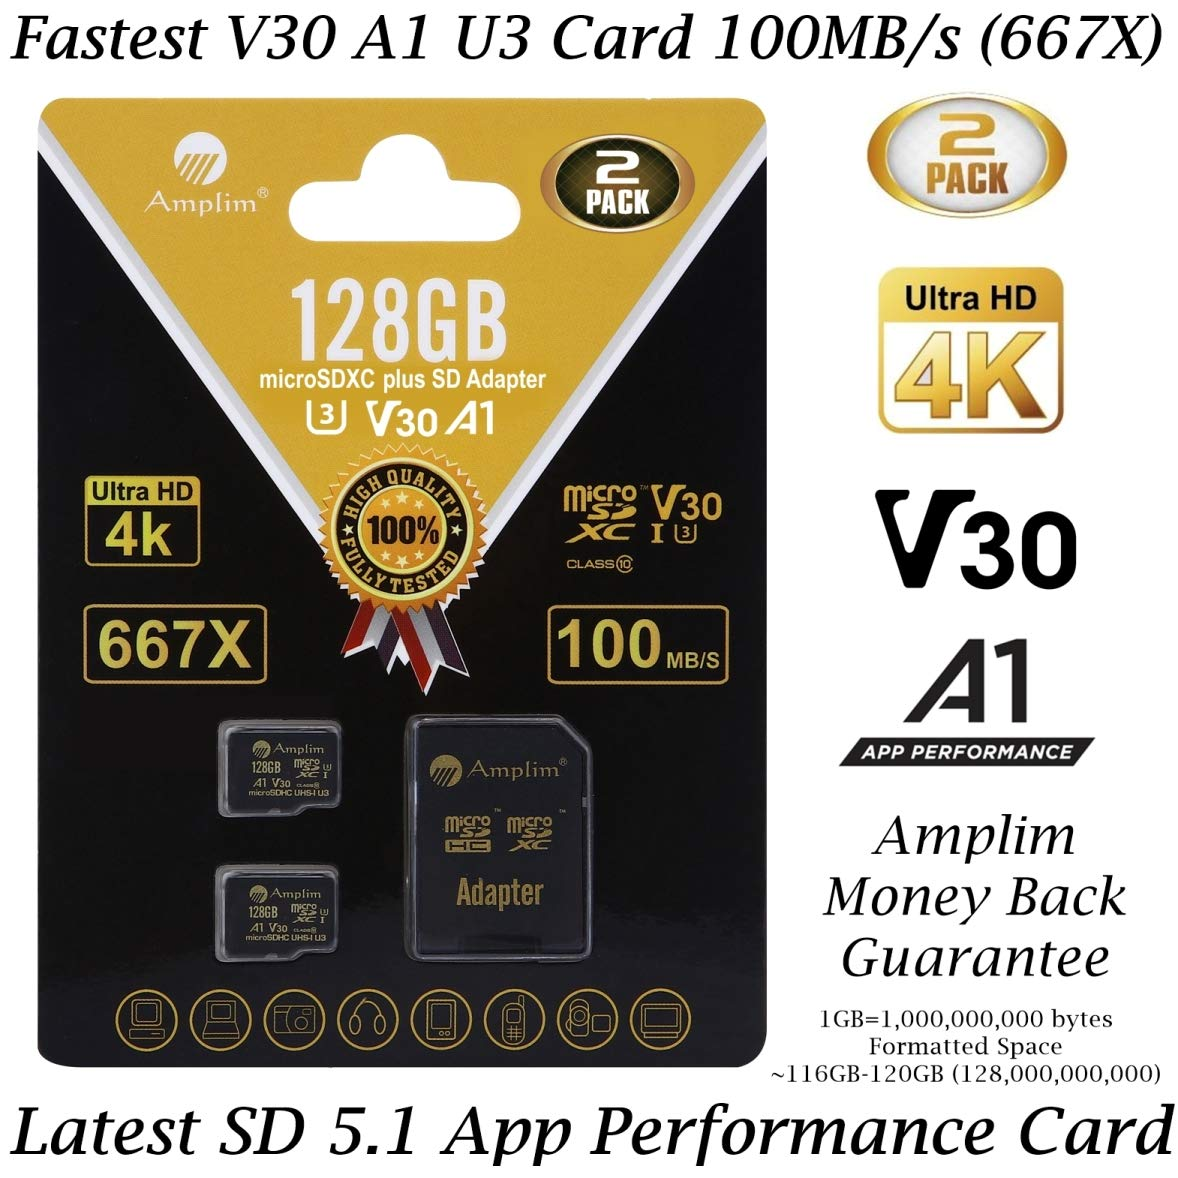 2-Pack 128GB Micro SD SDXC Card Plus Adapter Pack - Amplim 2X 128 GB MicroSD Card V30 A1 U3 C10 Extreme Speed 100MB/s UHS-I TF XC MicroSDXC Memory Card for Cell Phone, Nintendo, Galaxy, Fire, Gopro by Amplim